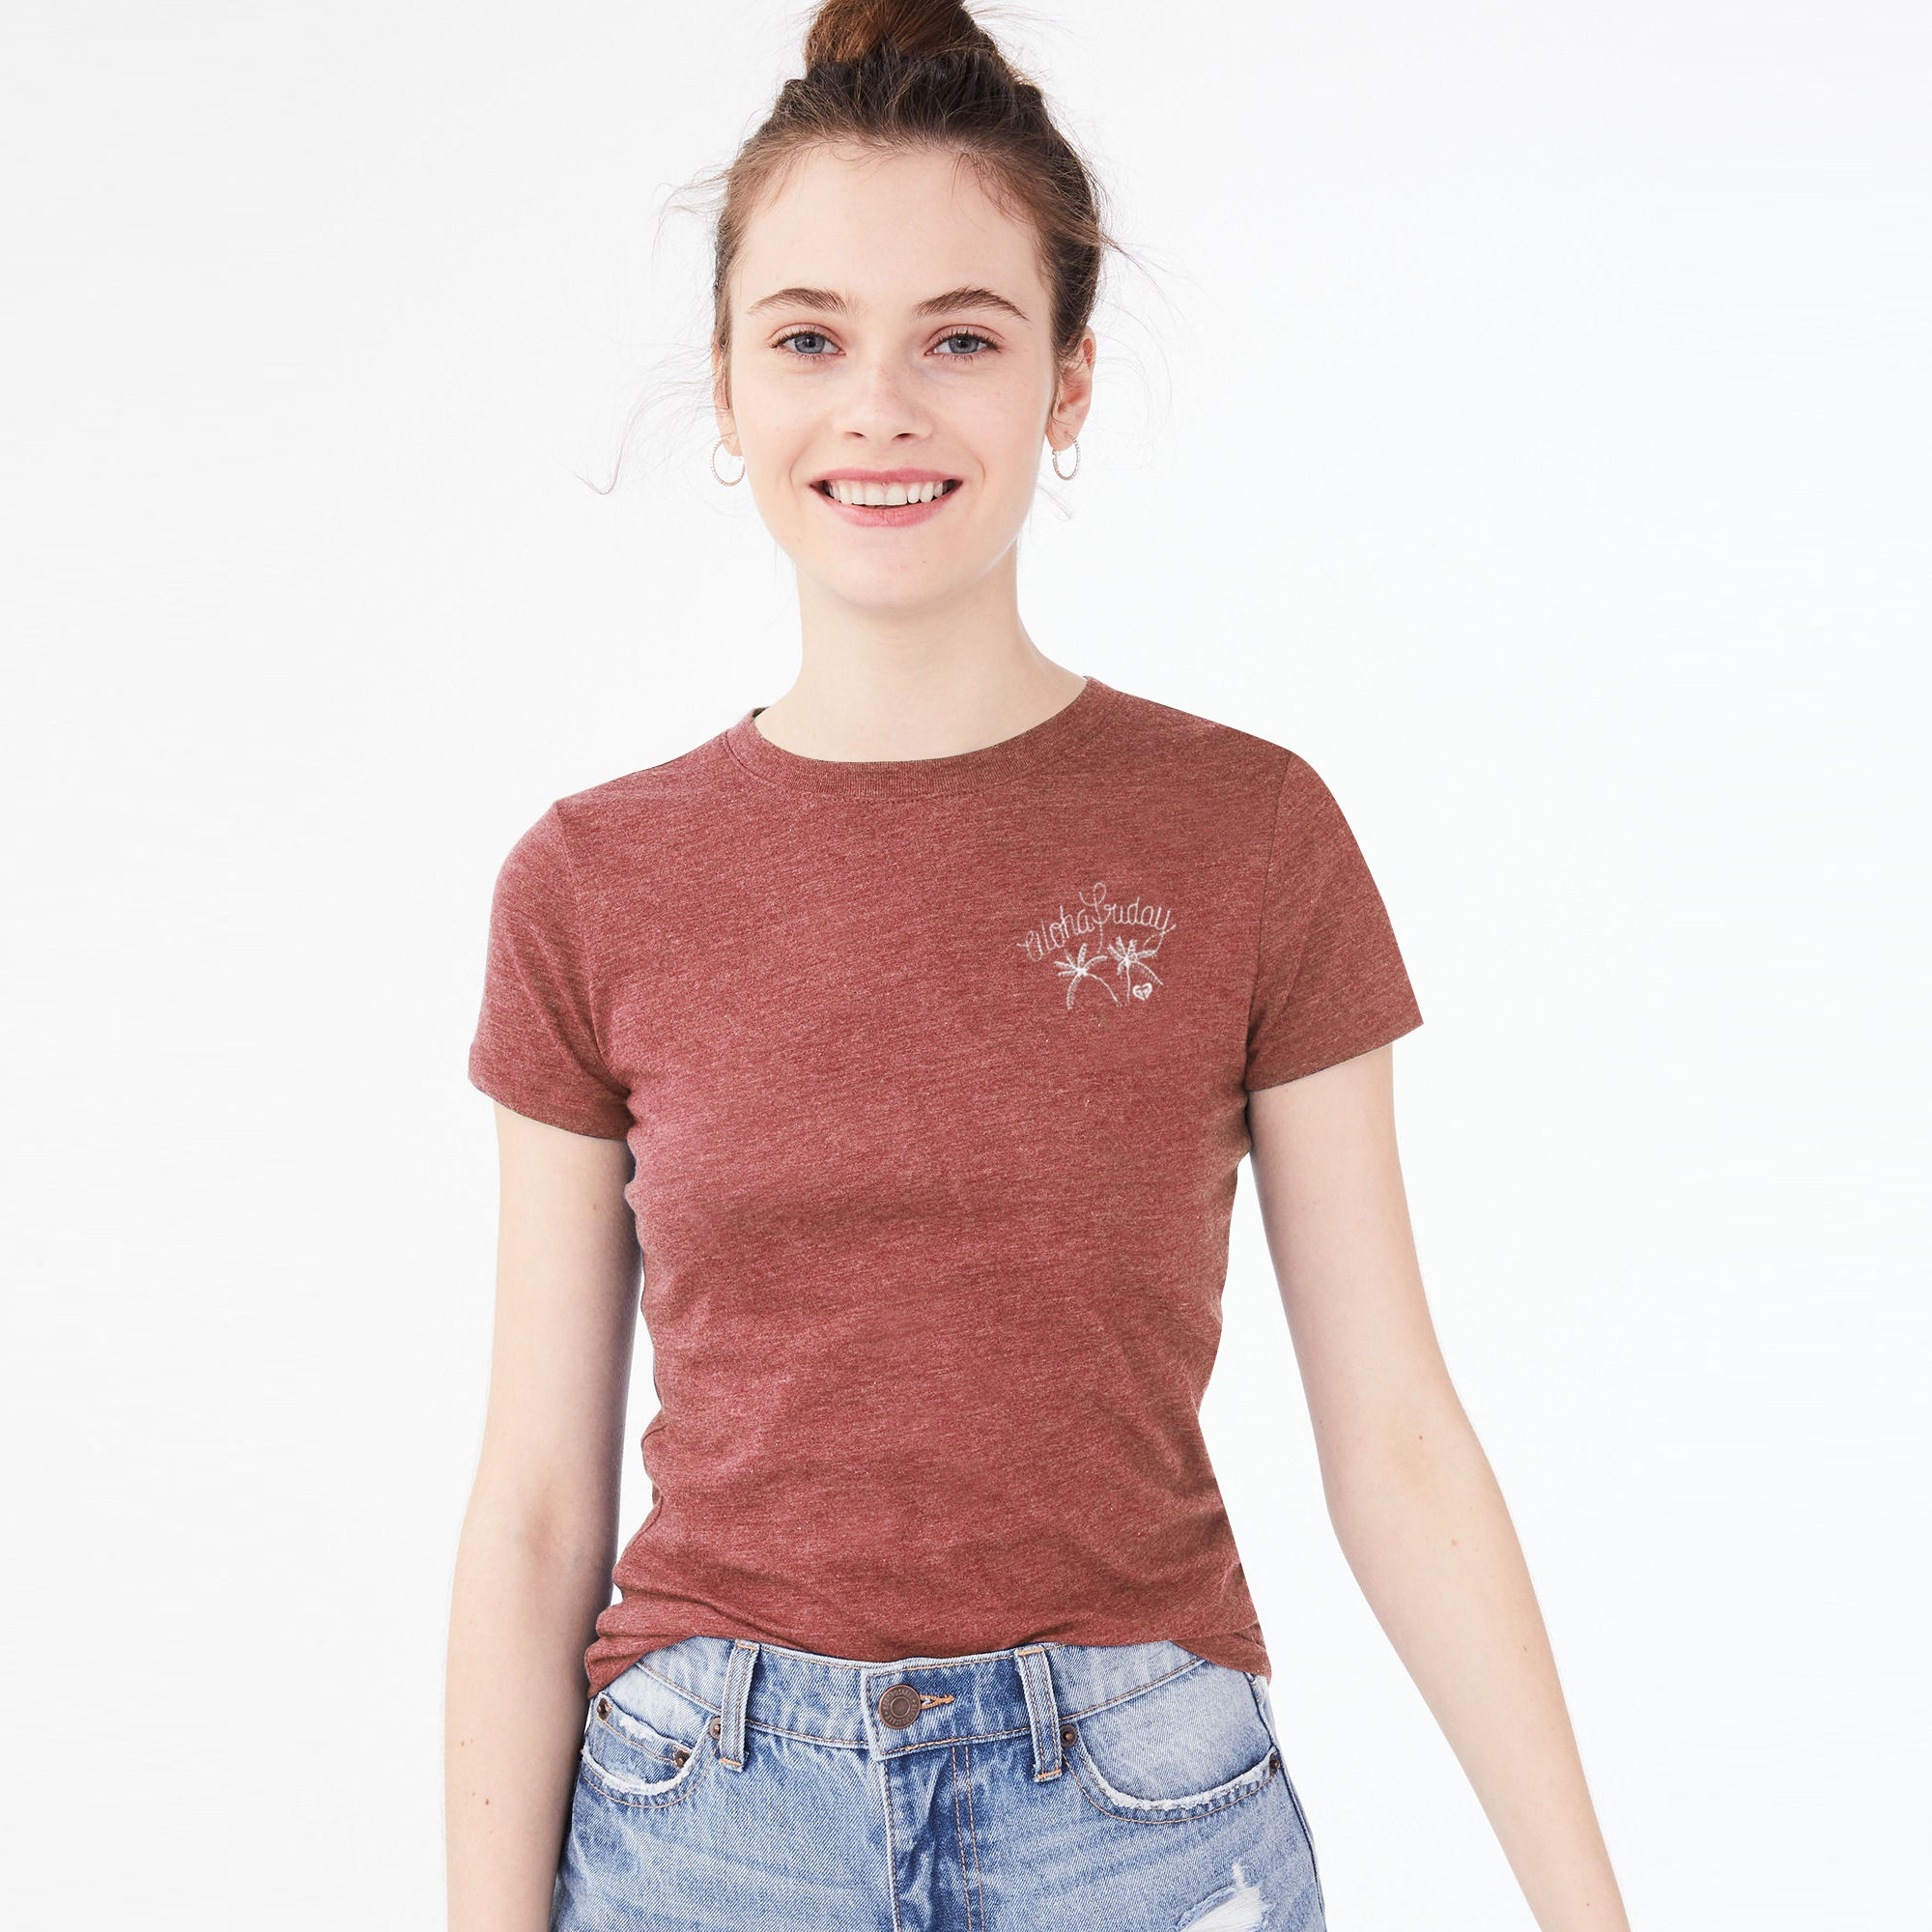 Roxy Half Sleeve Stylish Crew Neck Tee Shirt For Women-Dark Red Melange-BE8568